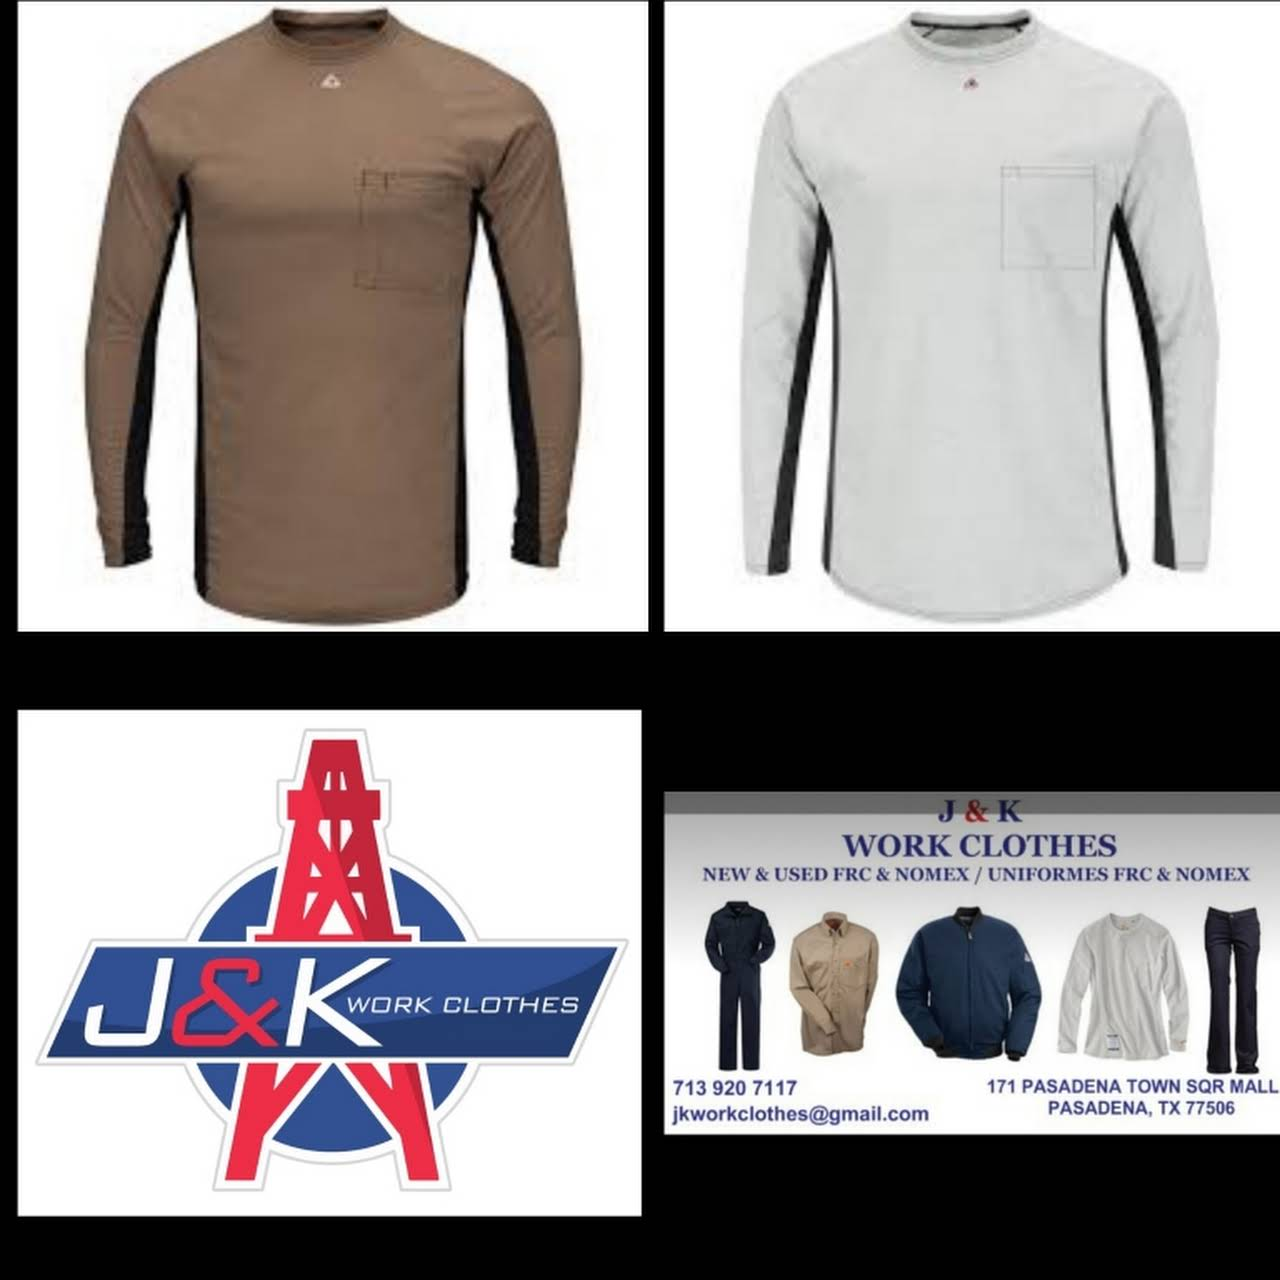 J & K WORK CLOTHES New & Used FRC Uniforms - Uniform Store